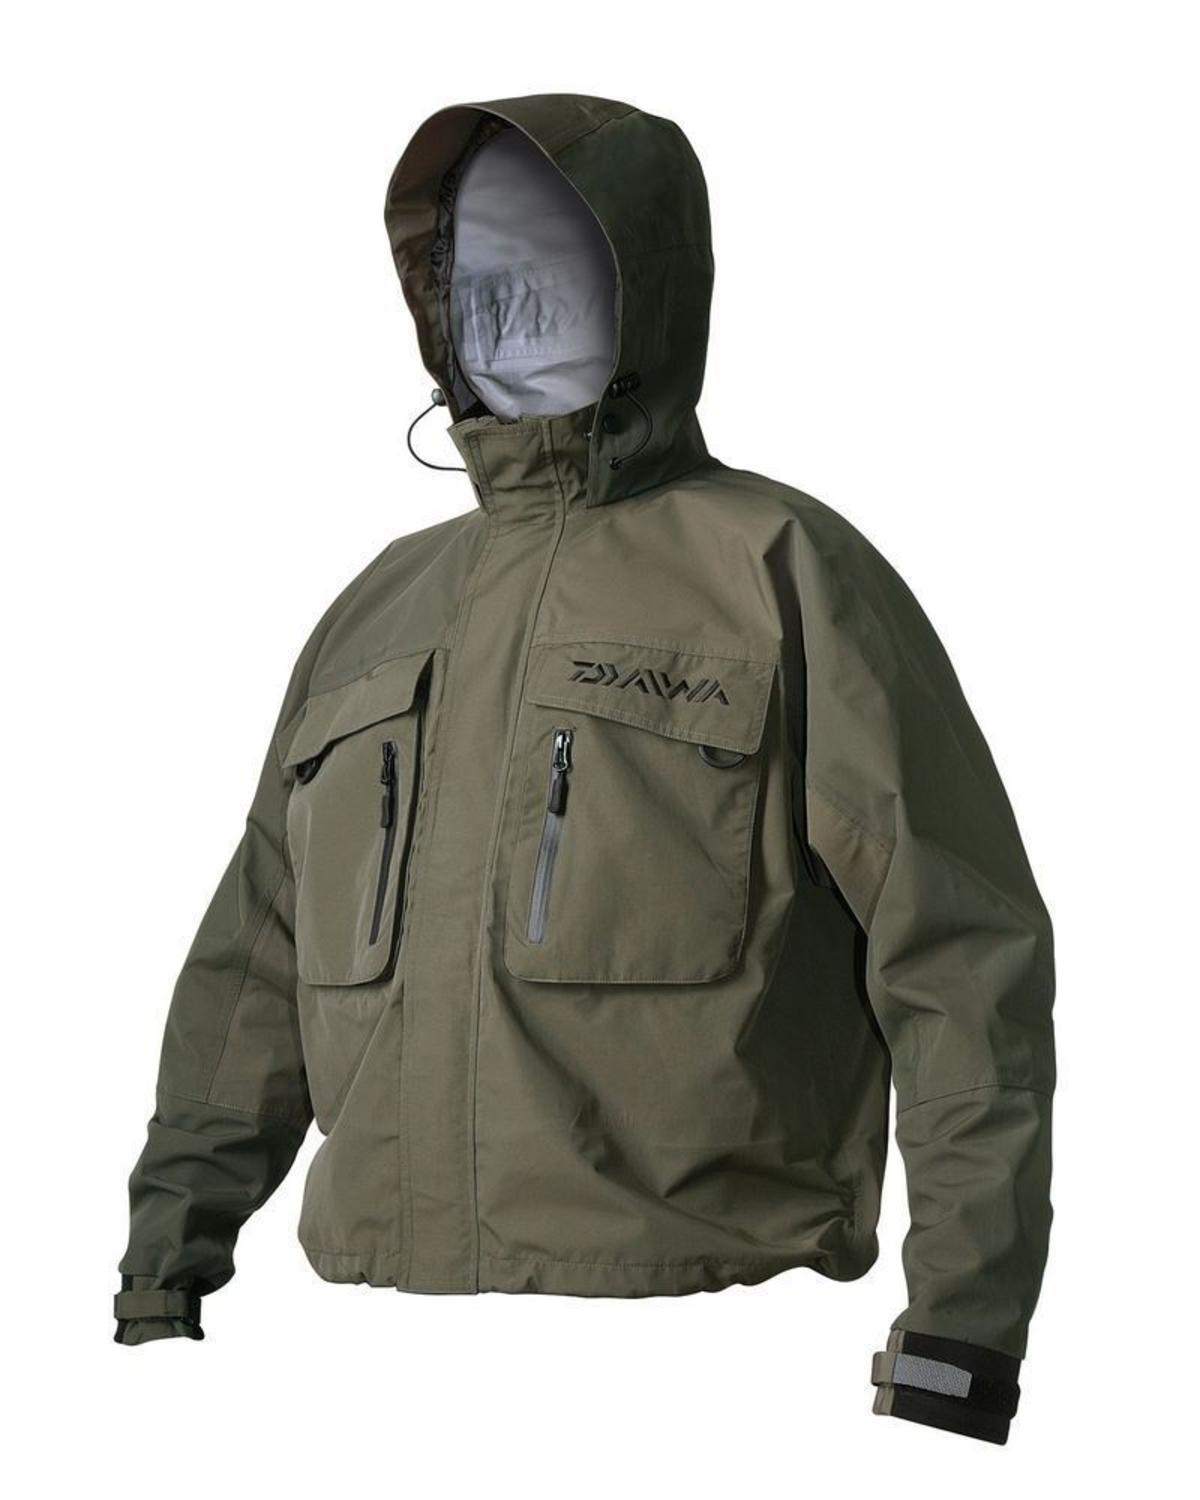 DAIWA GAME BREATHABLE WADING JACKET DGBWJ-L SIZE LARGE SPECIAL OFFER